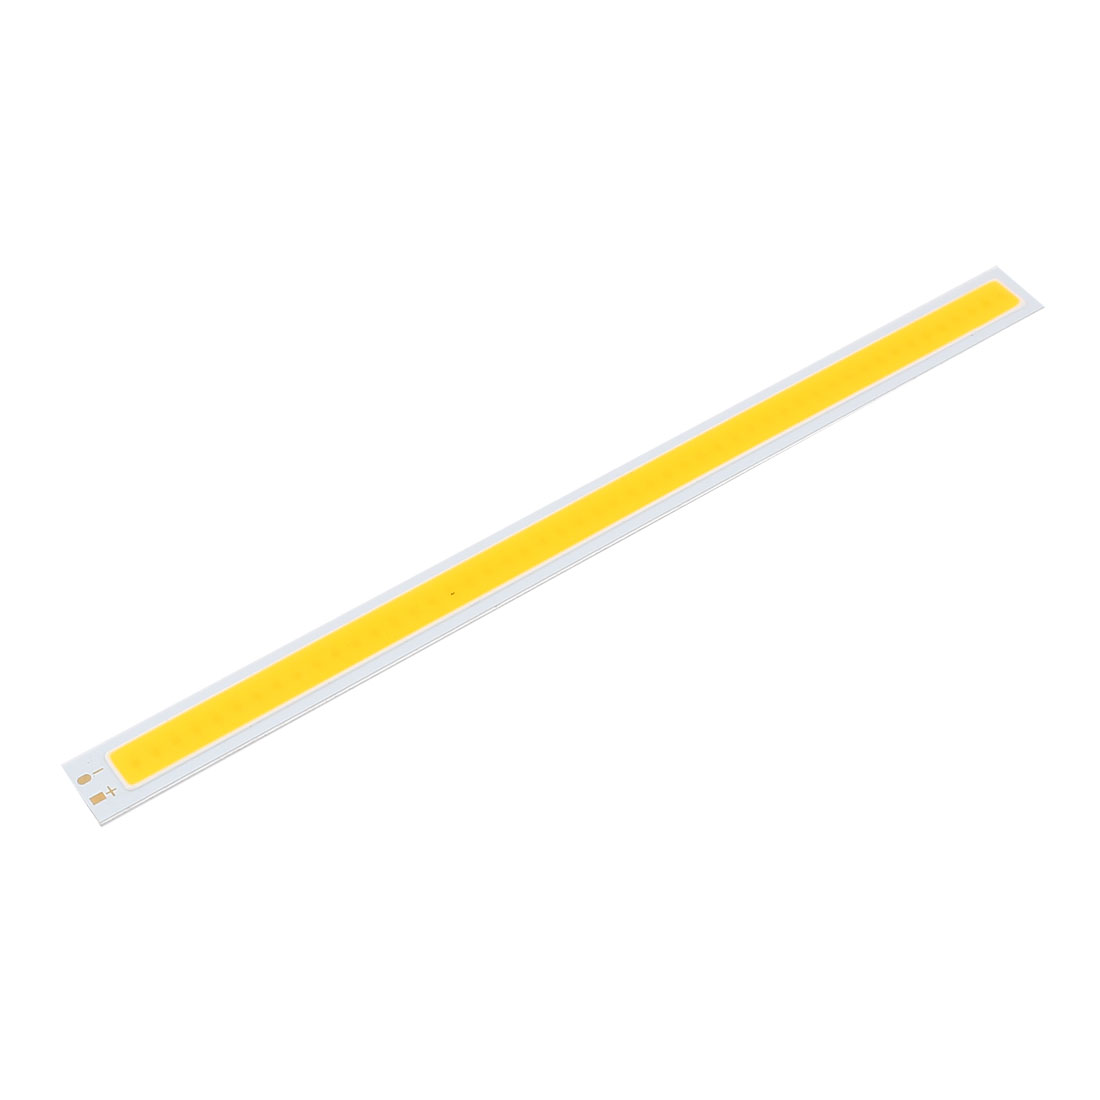 25W DC30-36V 750mA 80-90LM/W Warm White LED Light COB Lamp Beads Chip